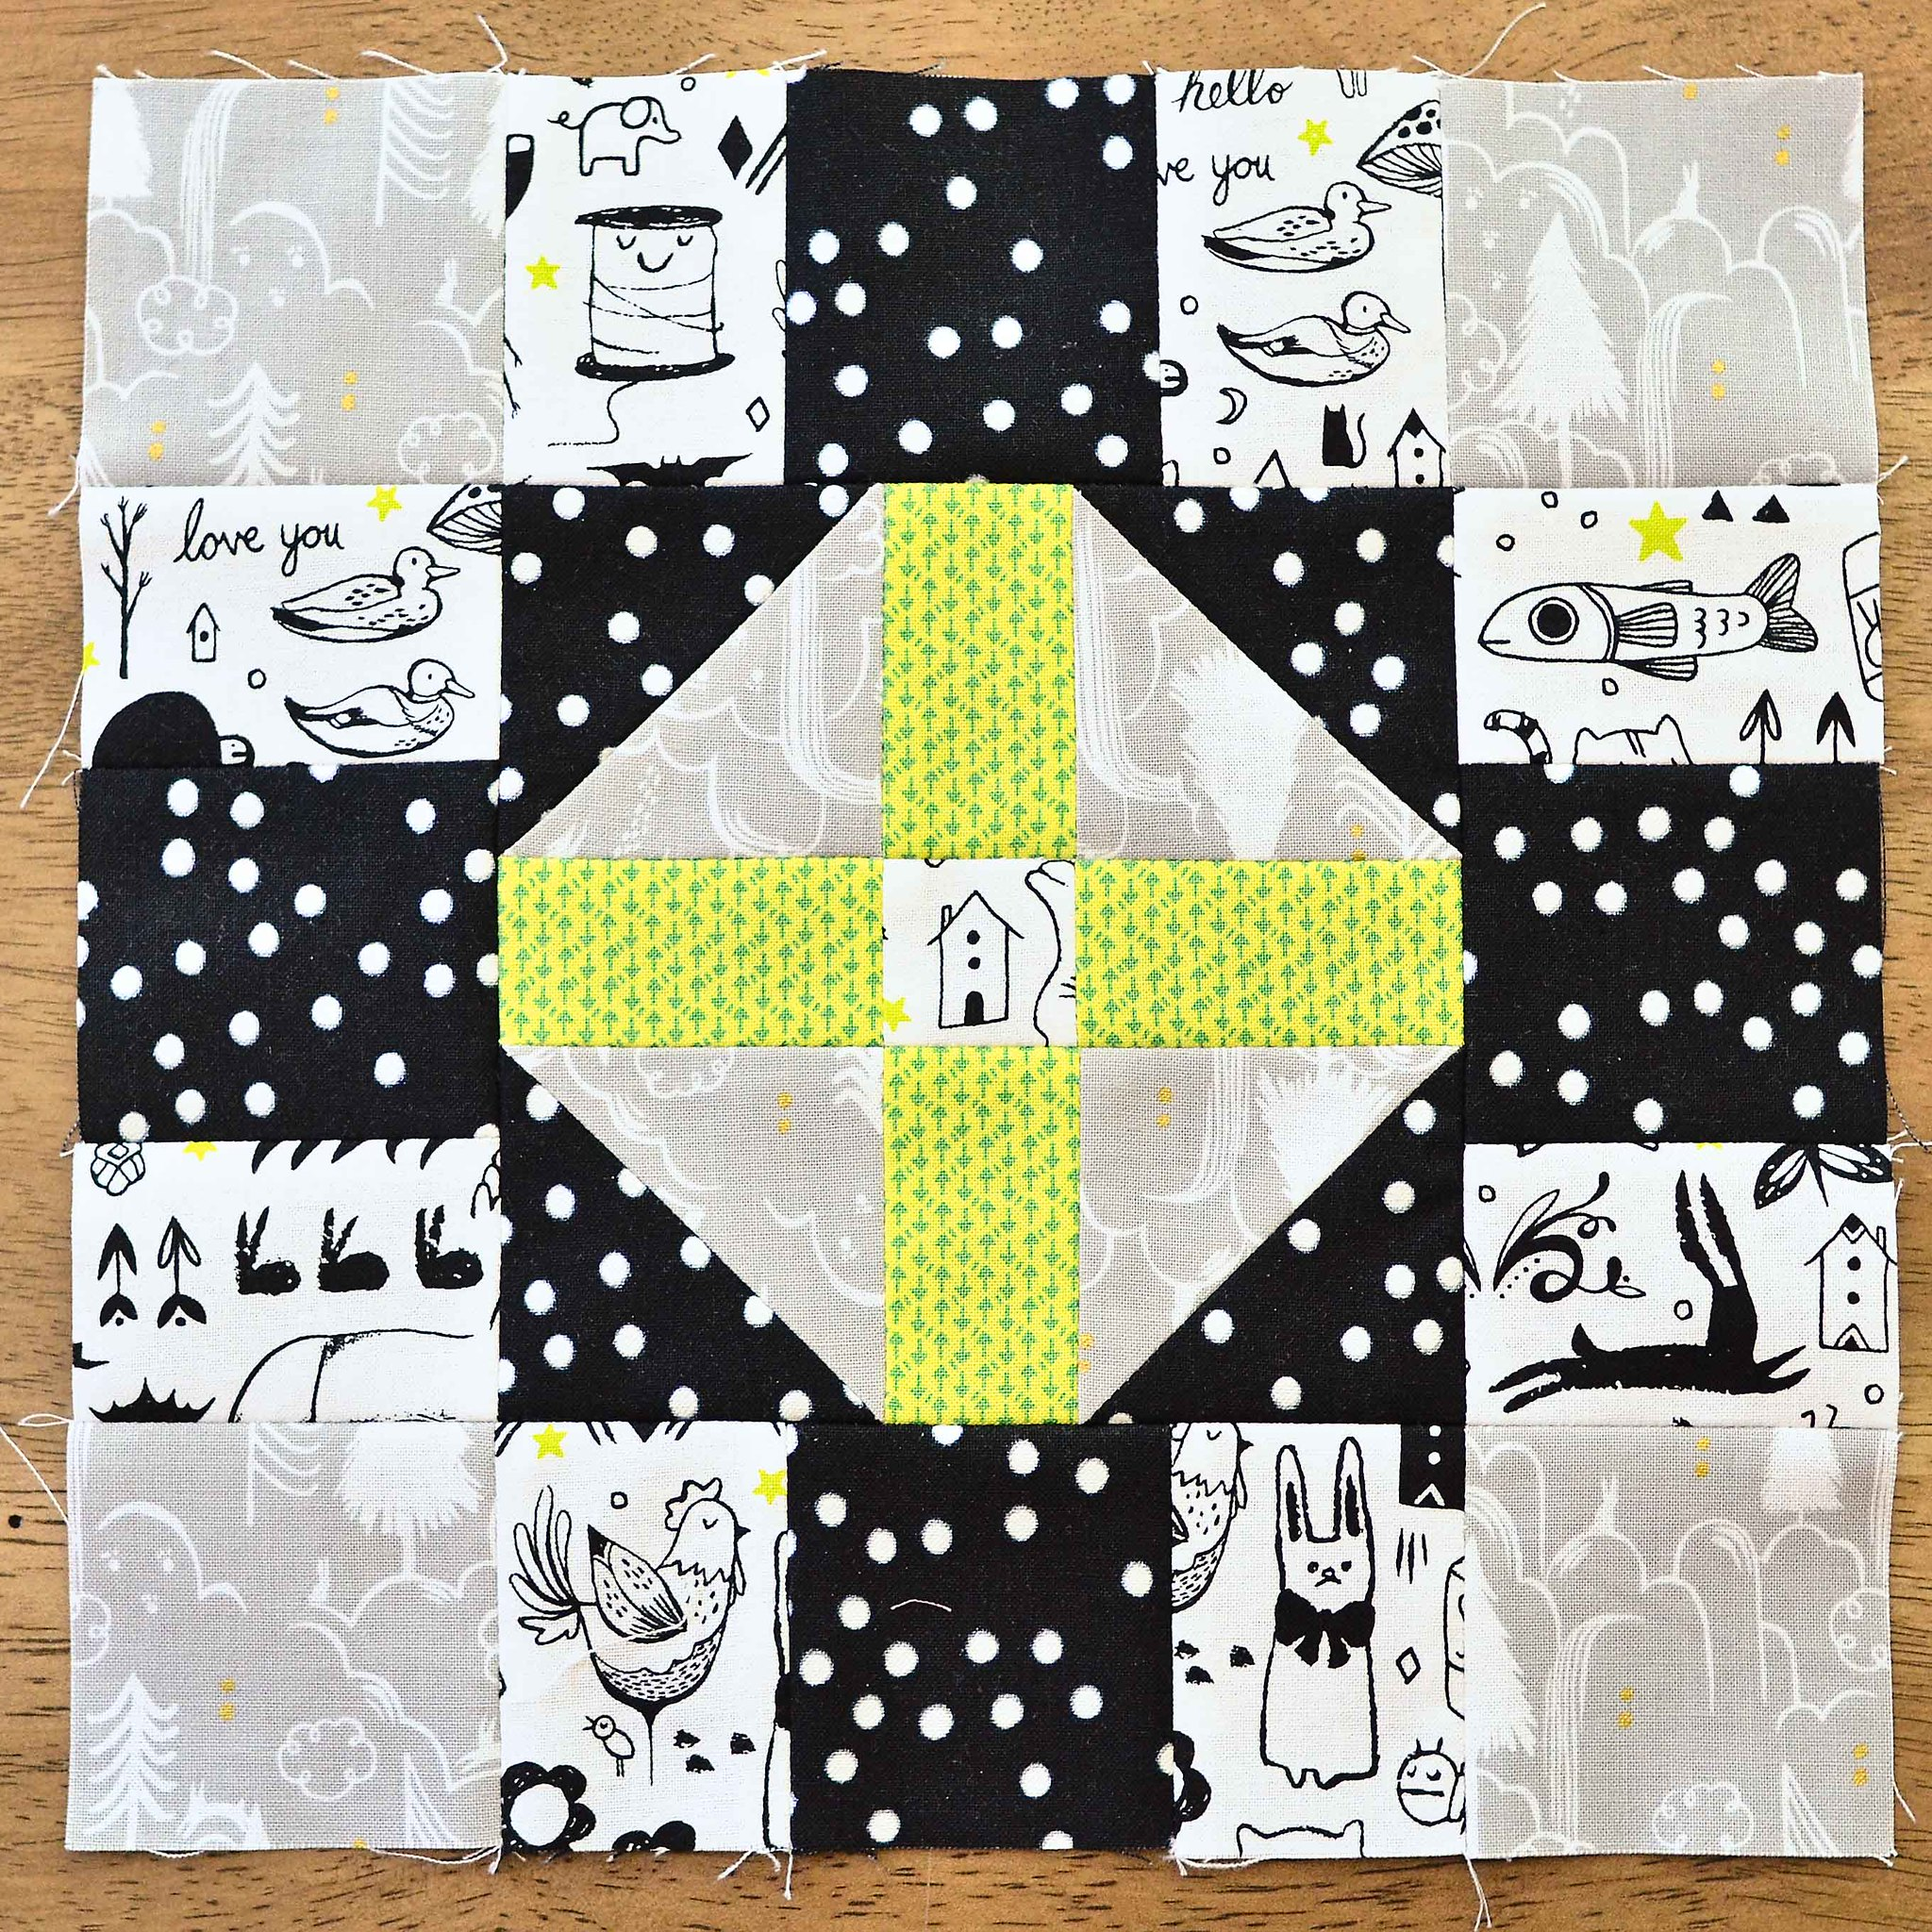 The Fussy Cut Sampler QAL Block 27